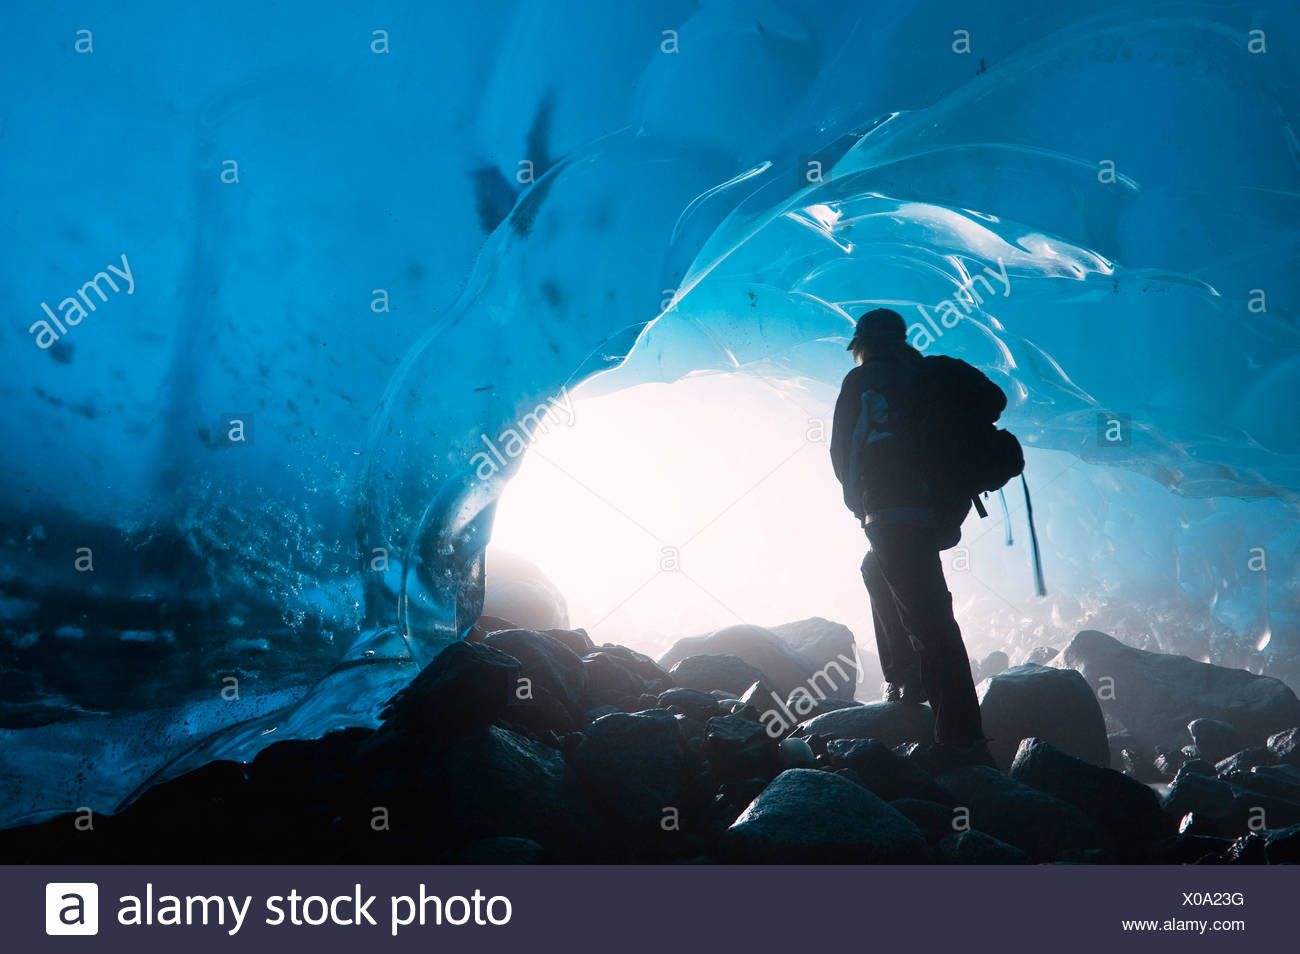 A hiker looks out the entrance of an ice cave in the Mendenhall Glacier, Juneau, Southeast Alaska, Summer - Stock Image